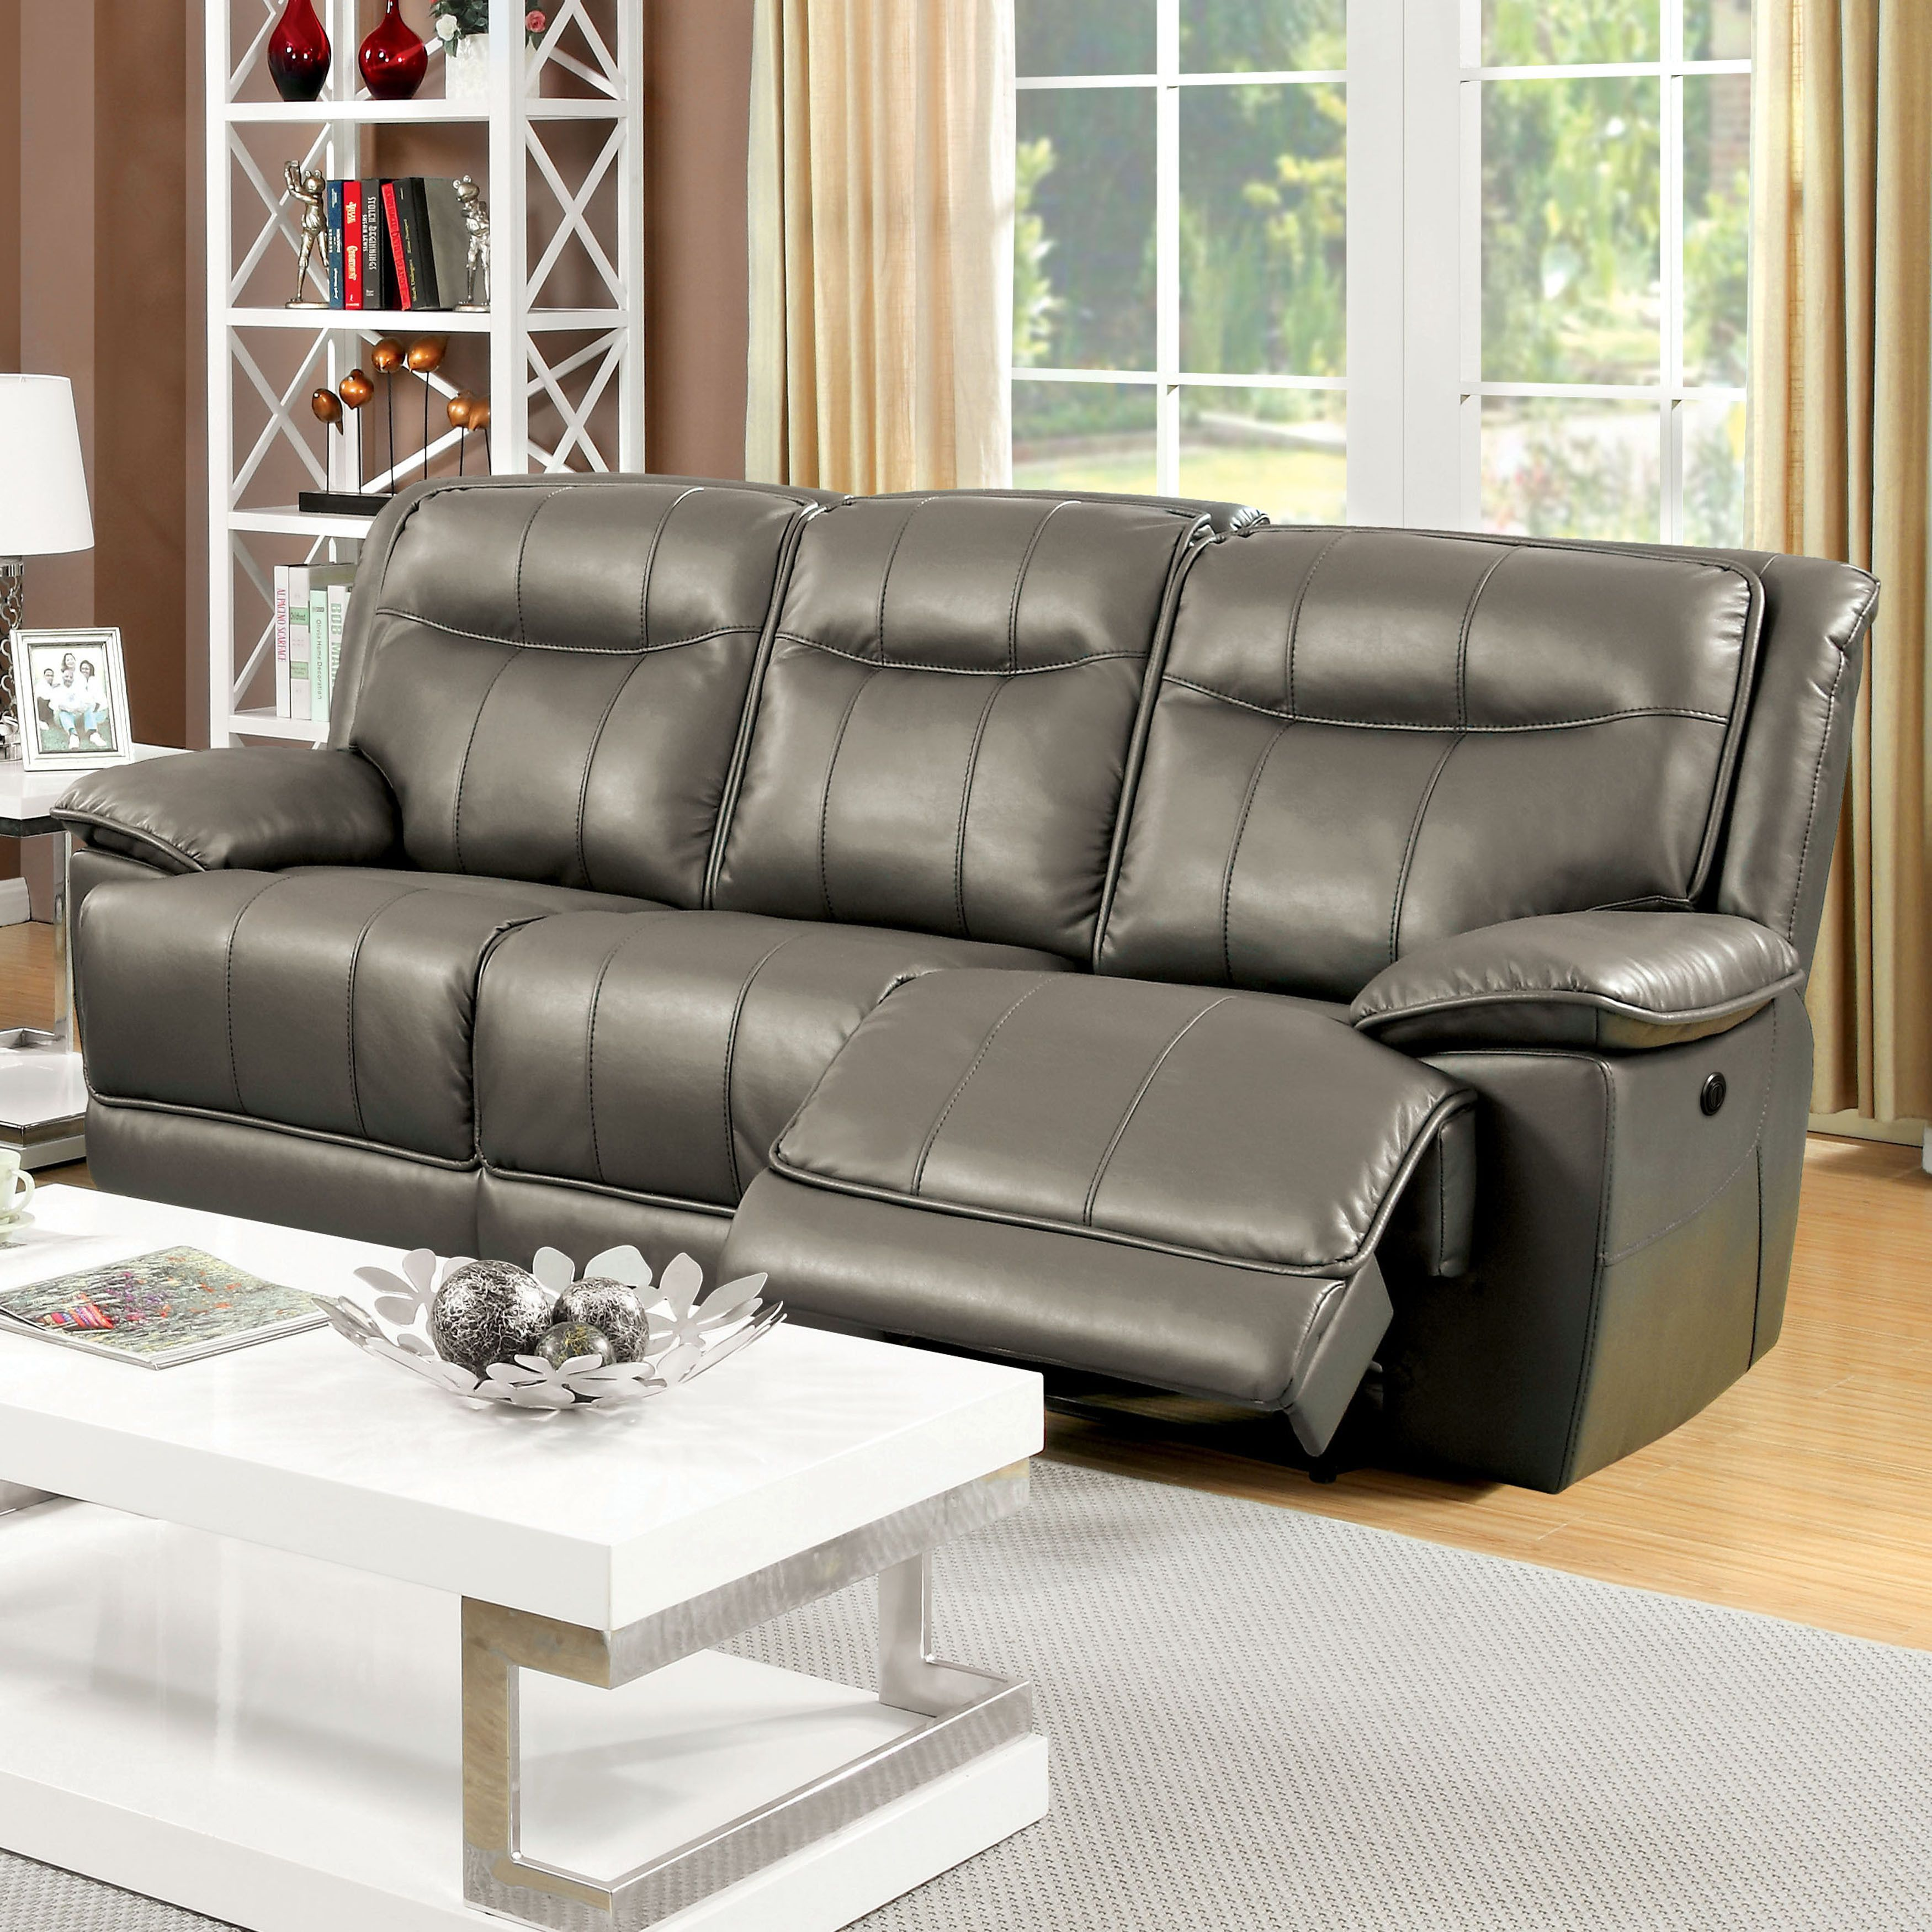 Tremendous Furniture Of America Loffman Reclining Sofa Decor Uwap Interior Chair Design Uwaporg